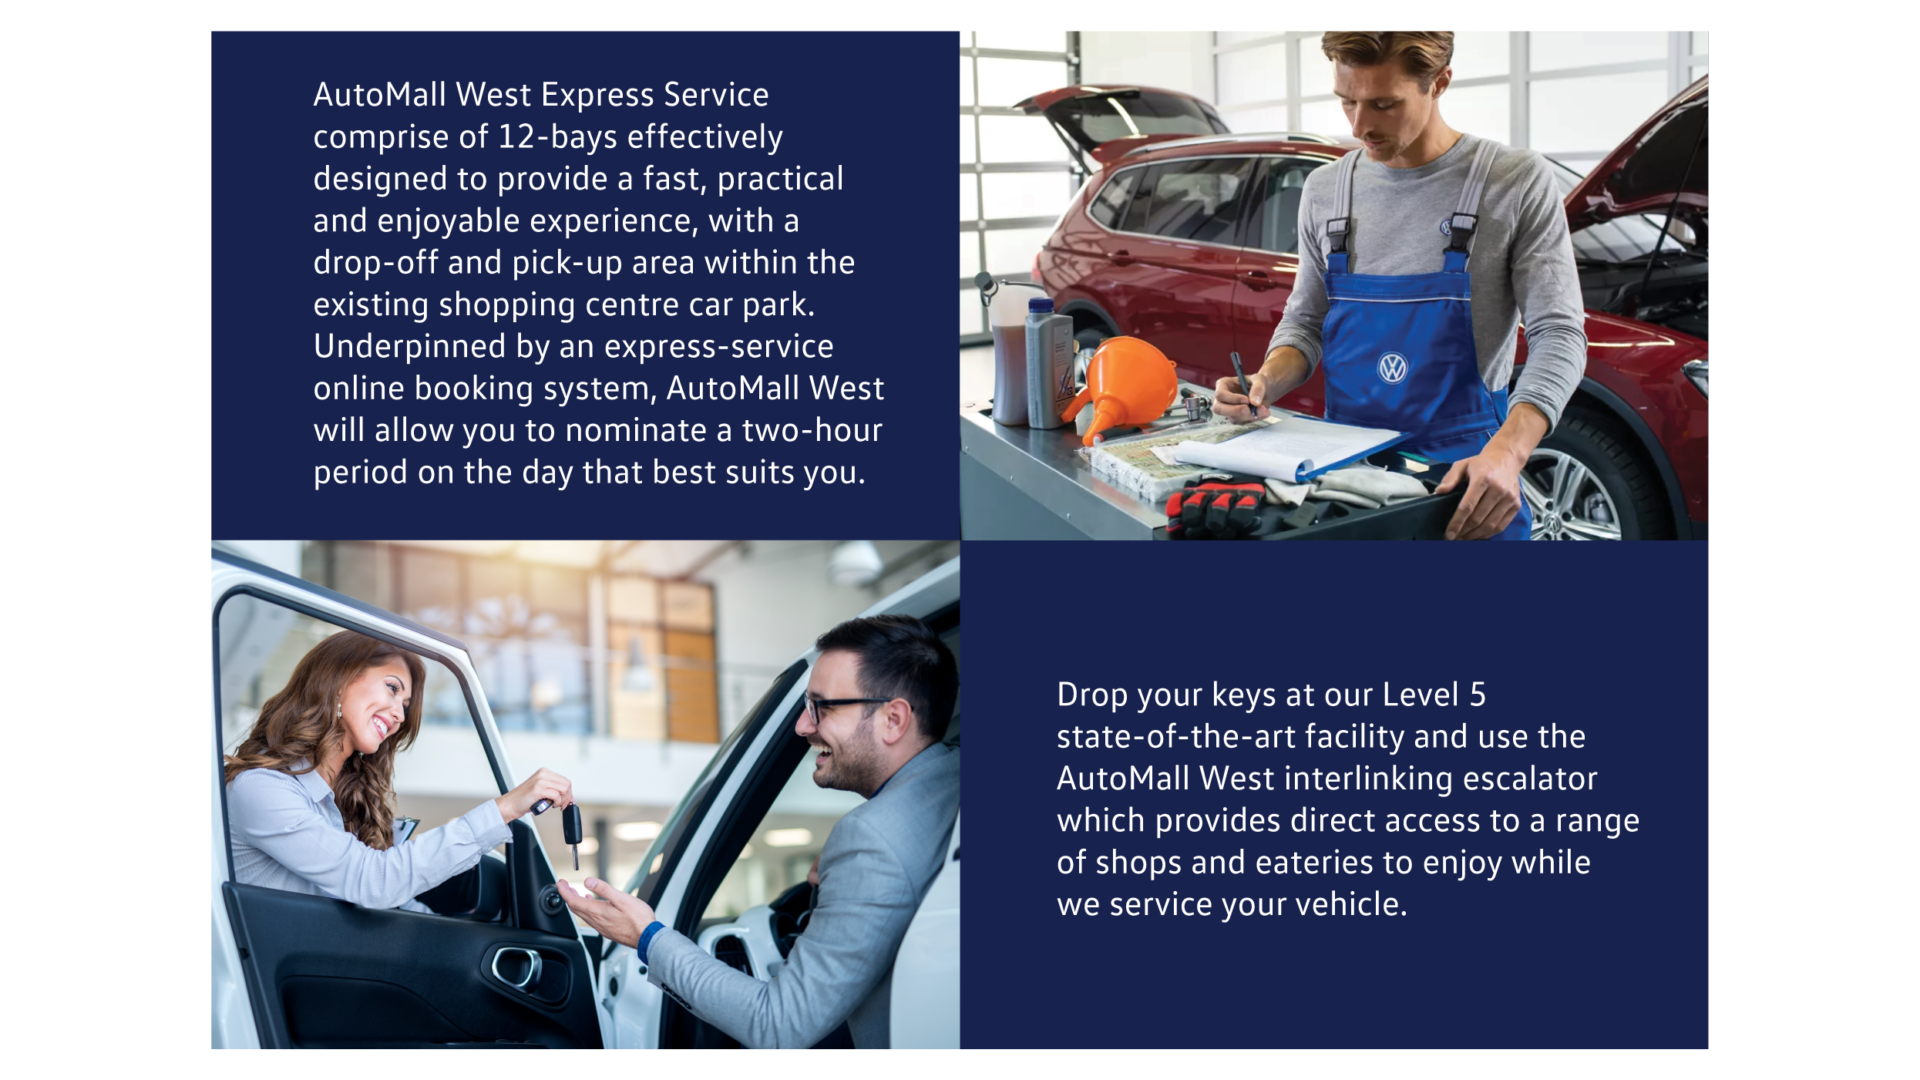 IVW-2021-07-Service-Centre-Moving-Landing-Page-14